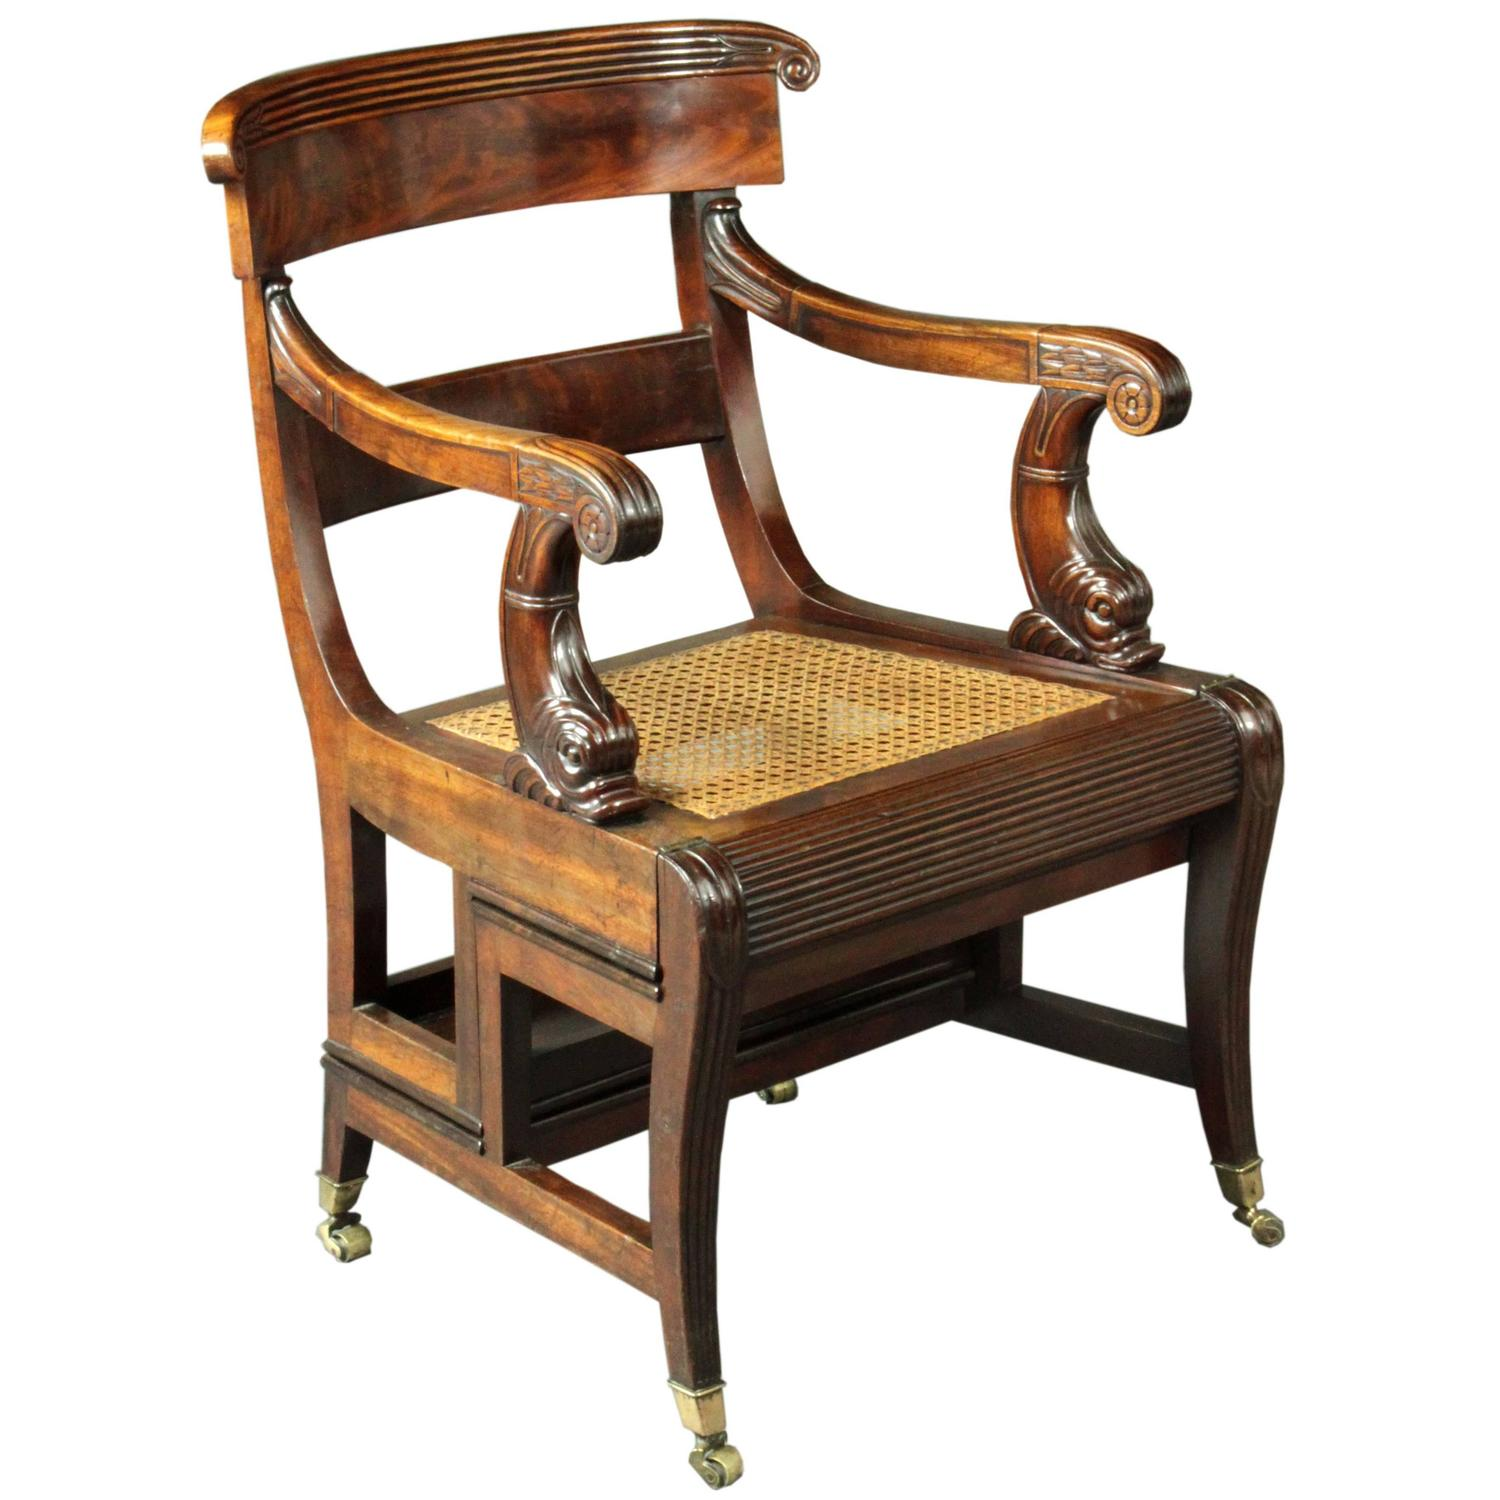 Antique Metamorphic Mahogany Library Chair English Regency circa